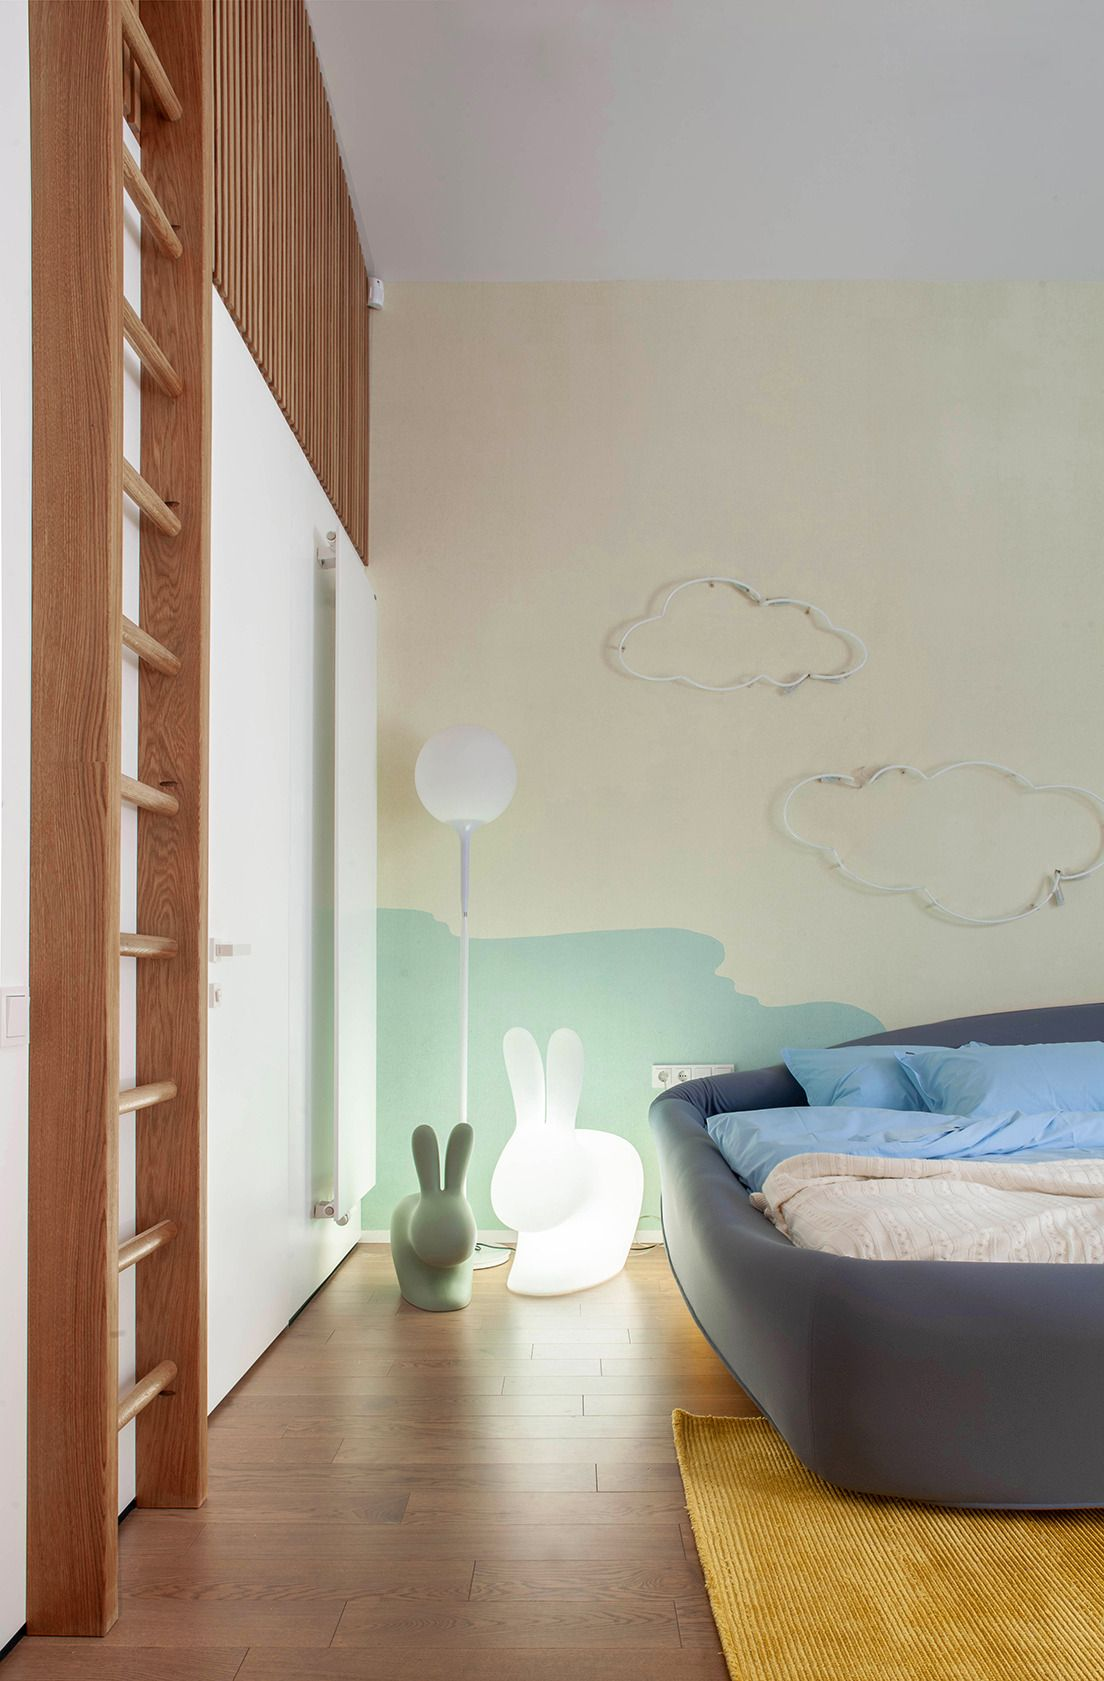 The chilldren's rooms are very fun and quirky while also maintaining a refined and elegant look